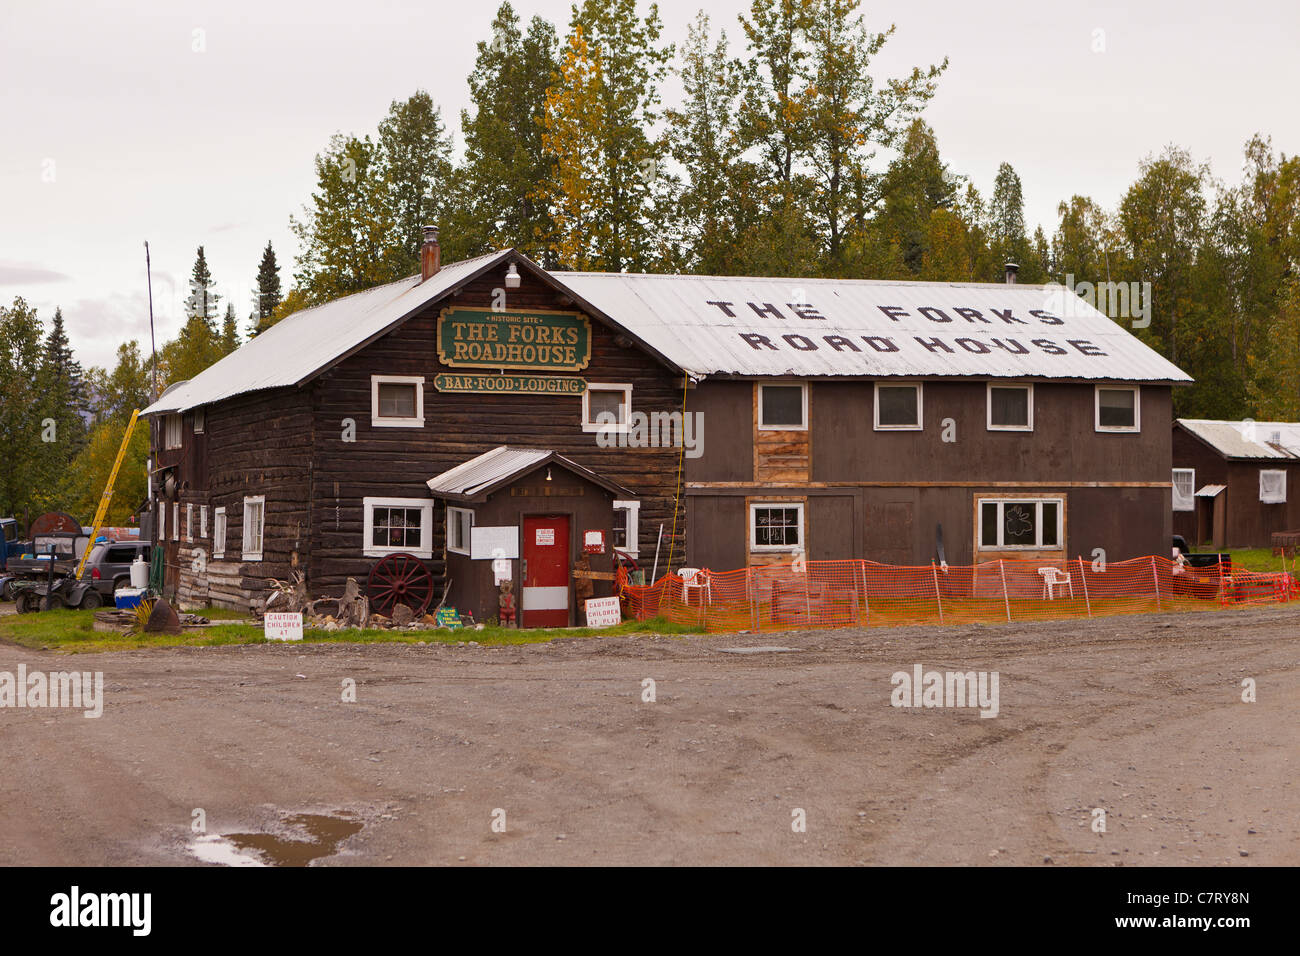 ALASKA, USA - The Forks Roadhouse, Petersville Road. - Stock Image